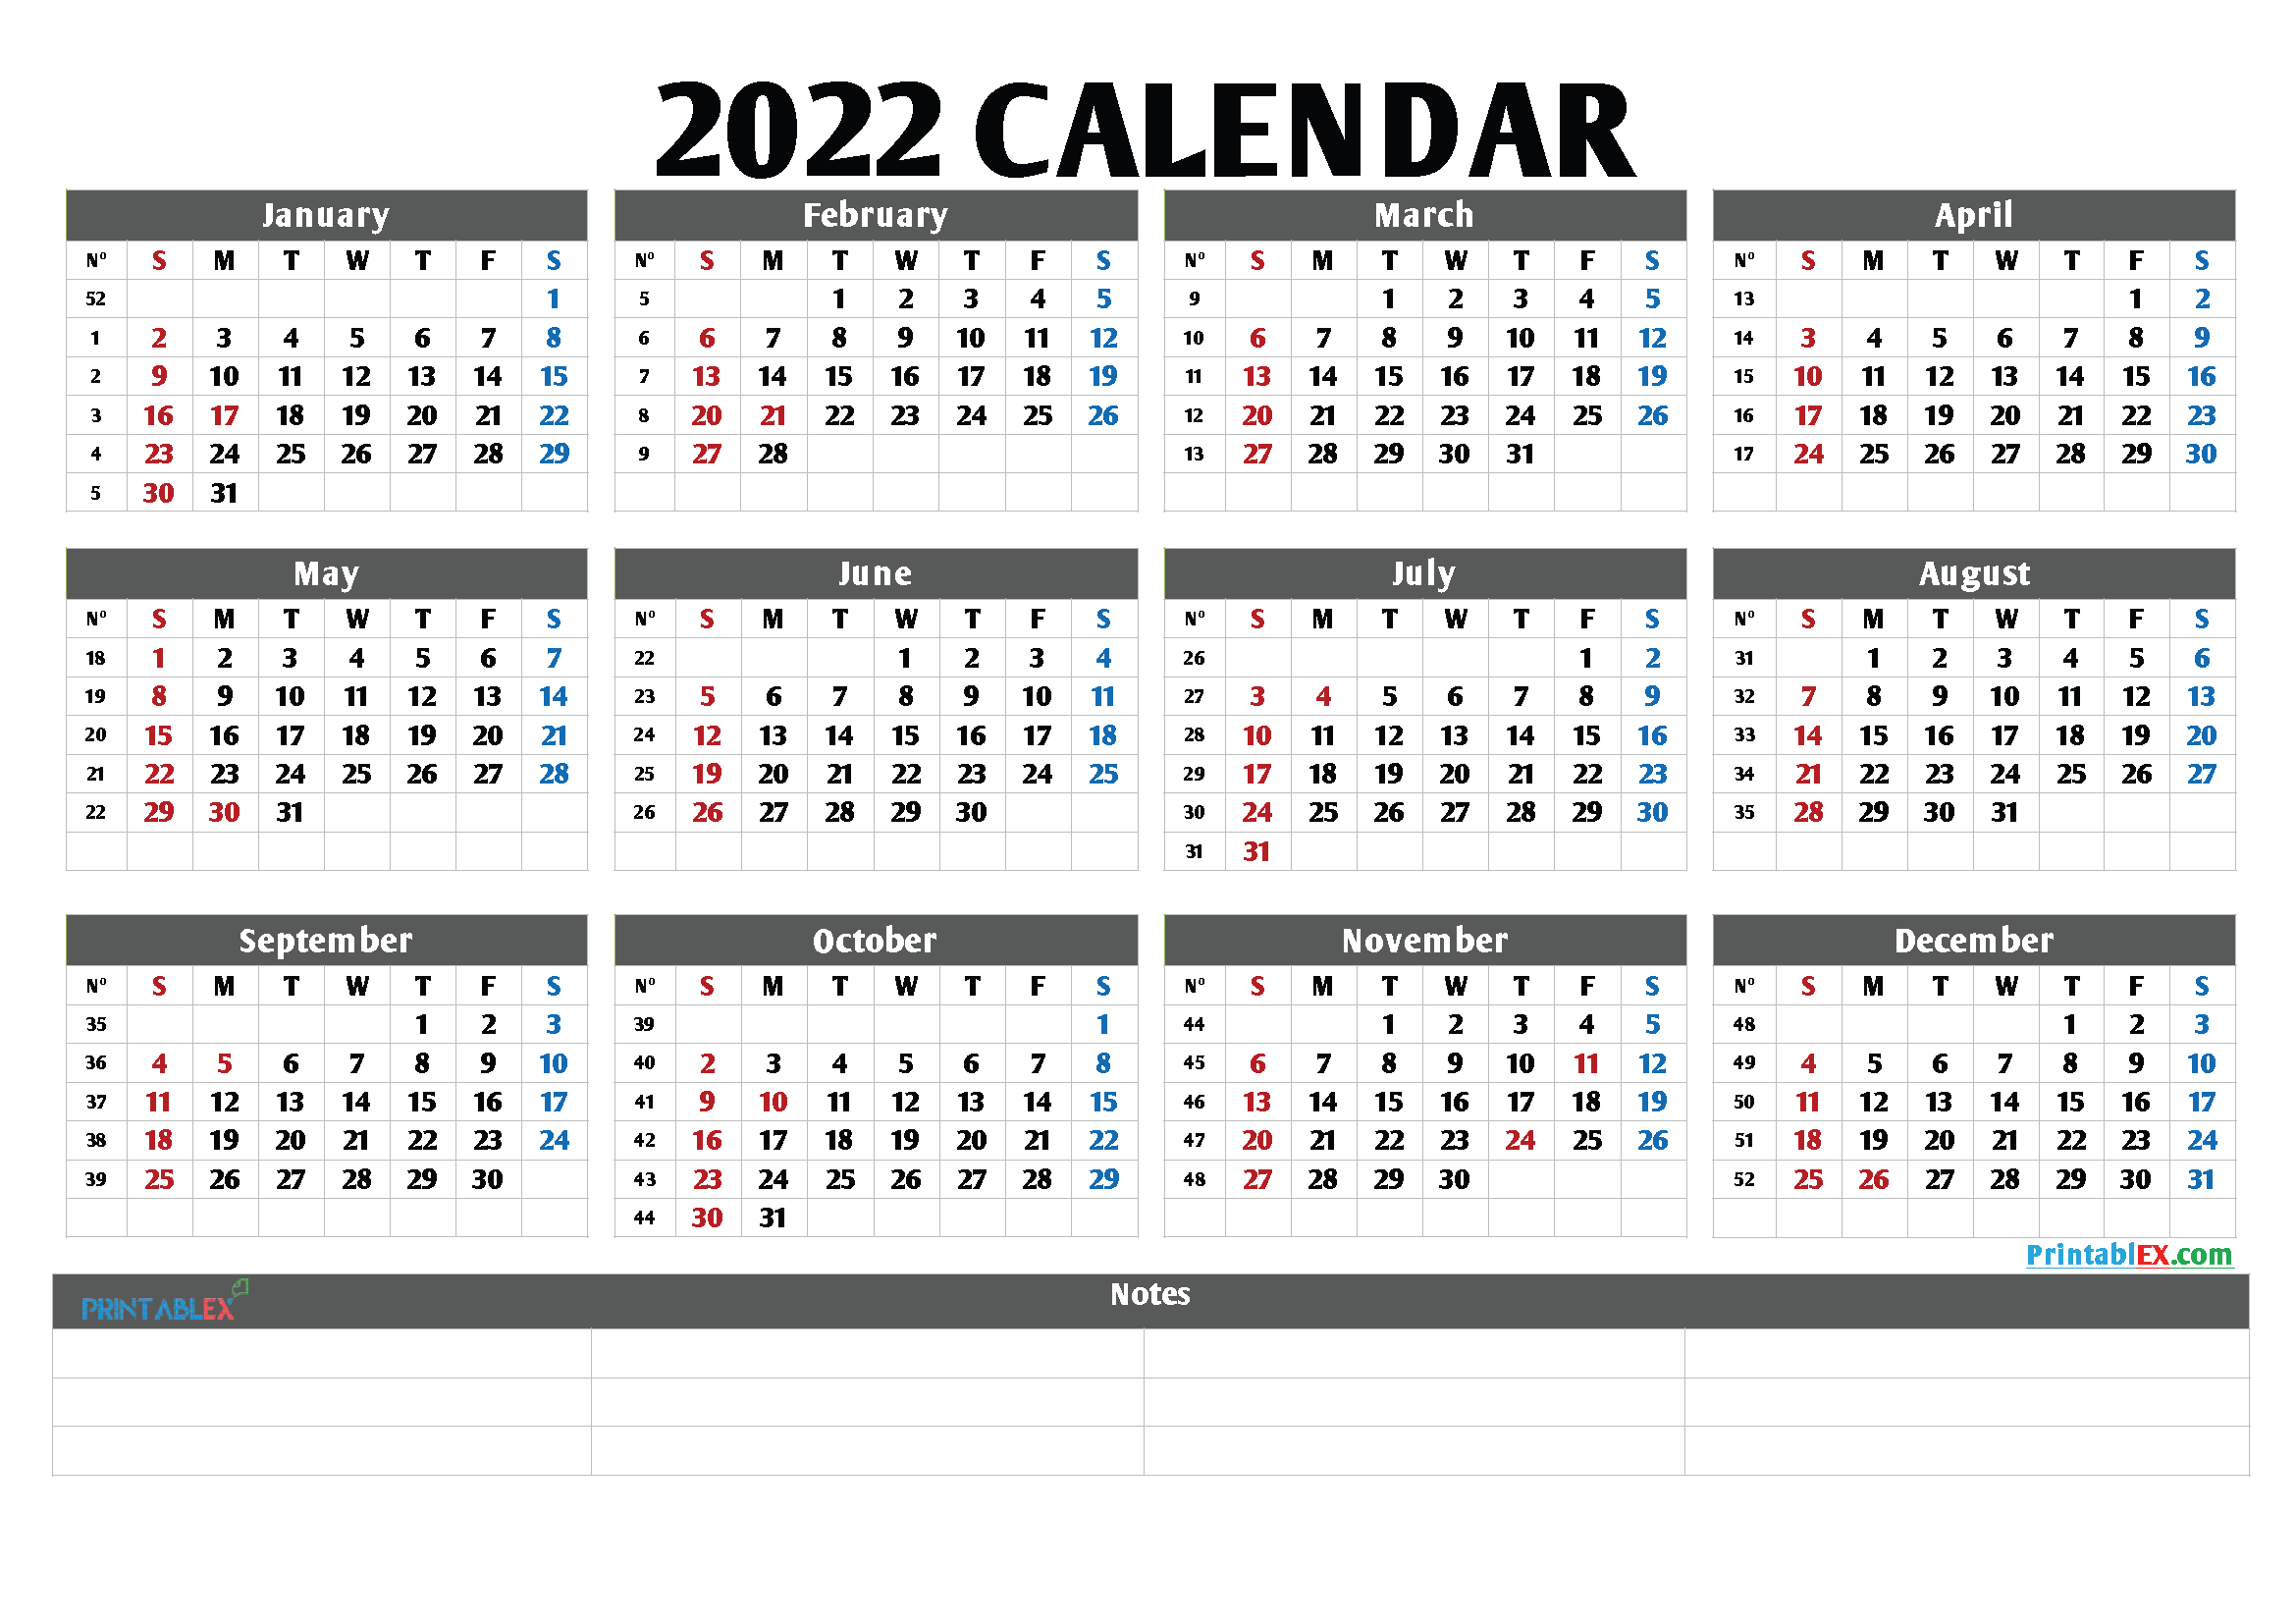 Printable 2022 Yearly Calendar (Font: forte)